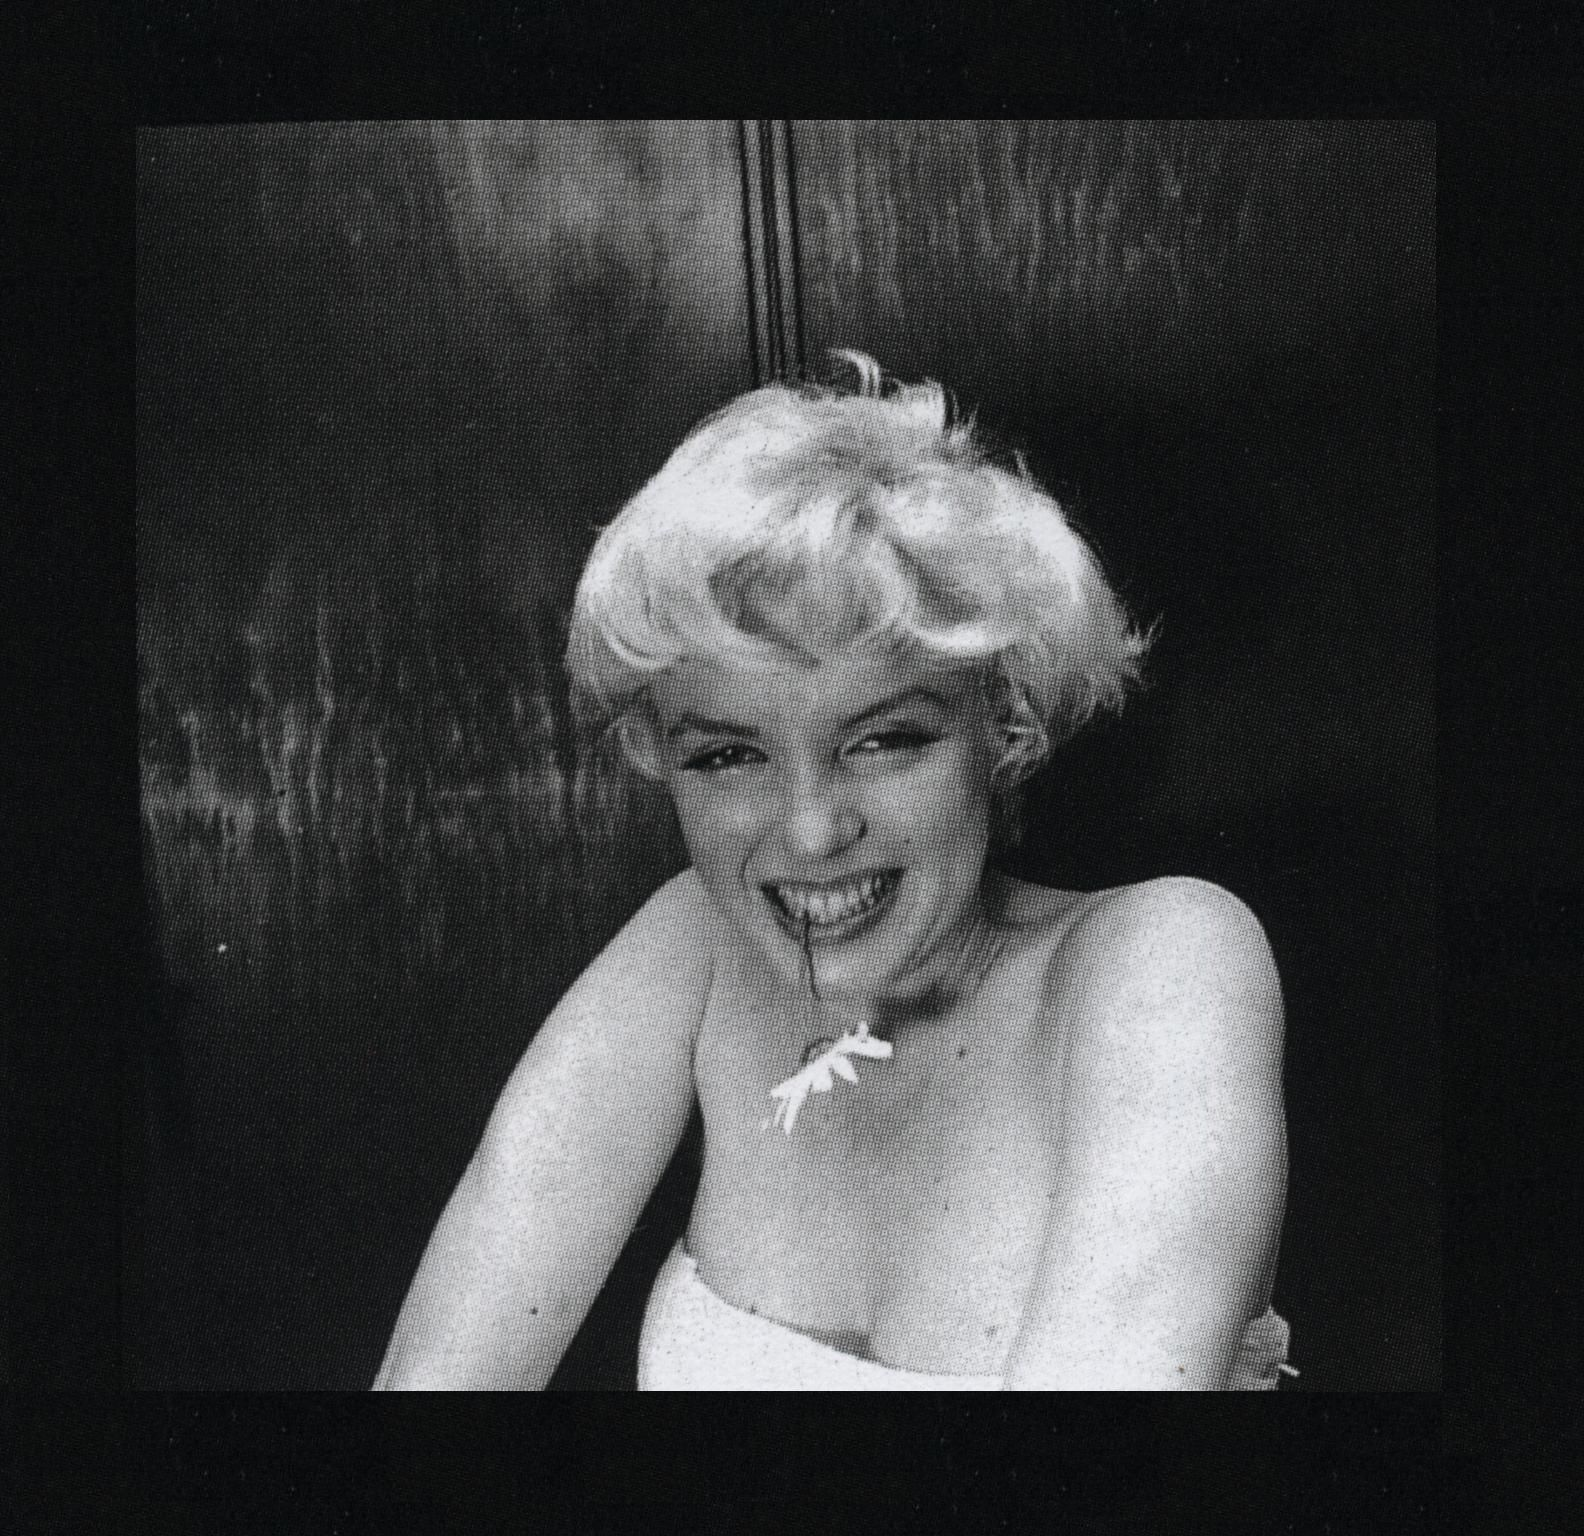 Marilyn by Cecil Beaton - Marilyn Monroe Photos on ThisIsMarilyn.